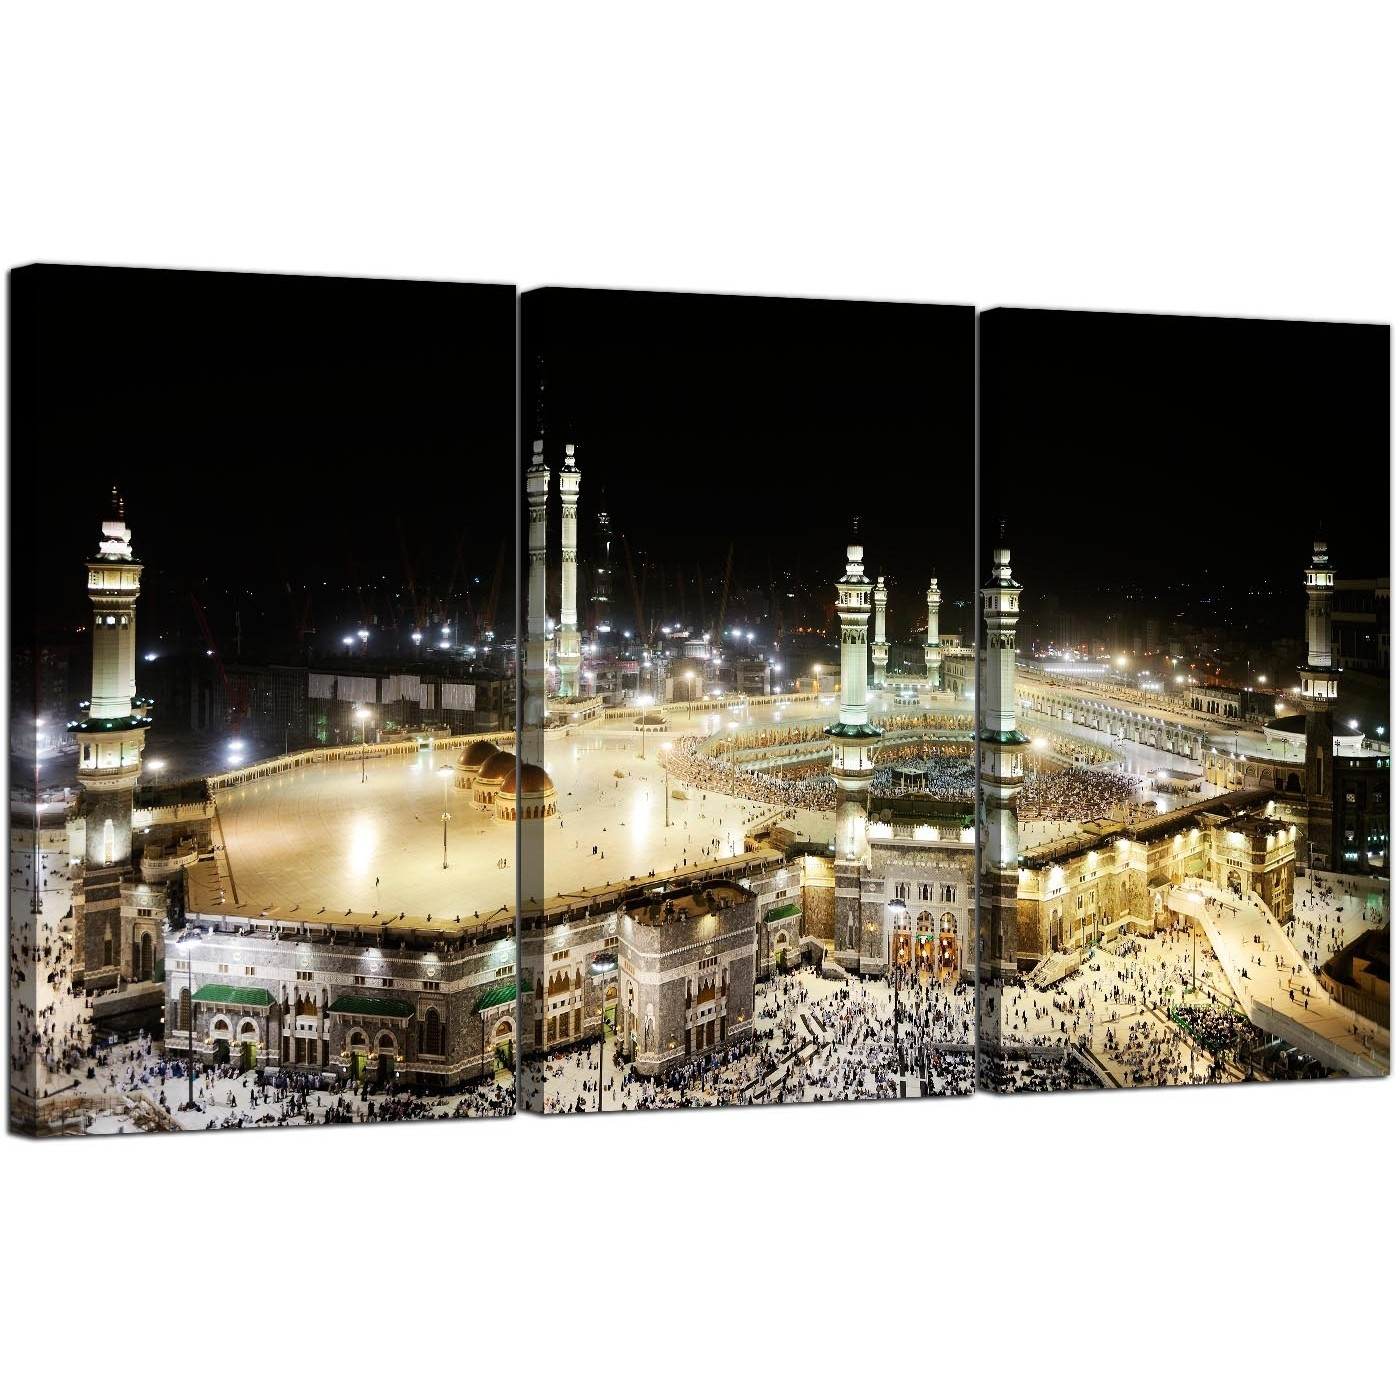 Large Islamic Mecca At Hajj Canvas Pictures Set Of 3 For A Living Room For Latest Islamic Canvas Wall Art (View 15 of 15)